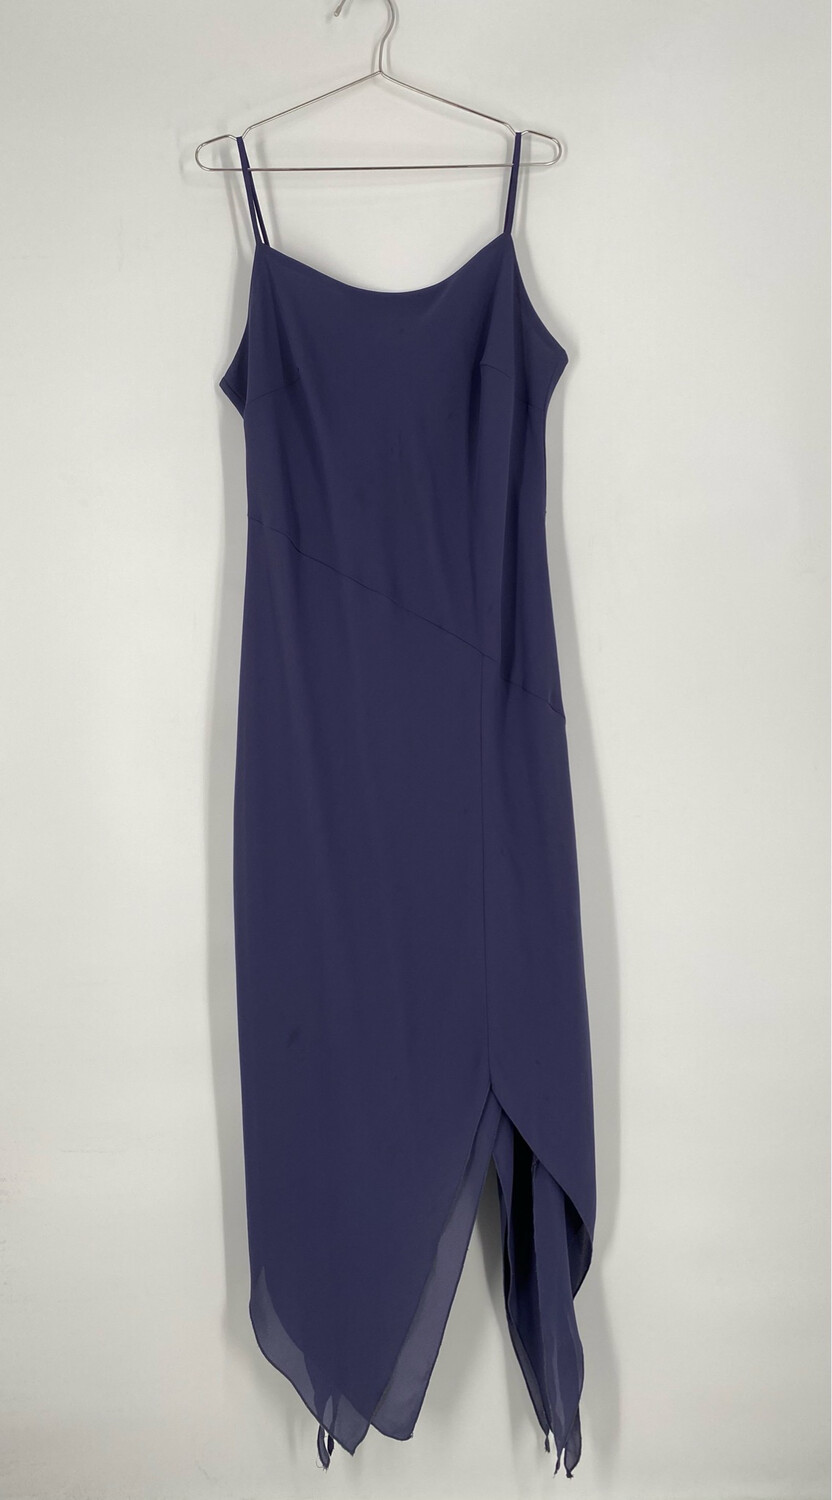 Alyn Paige Periwinkle Maxi Dress Size 1X